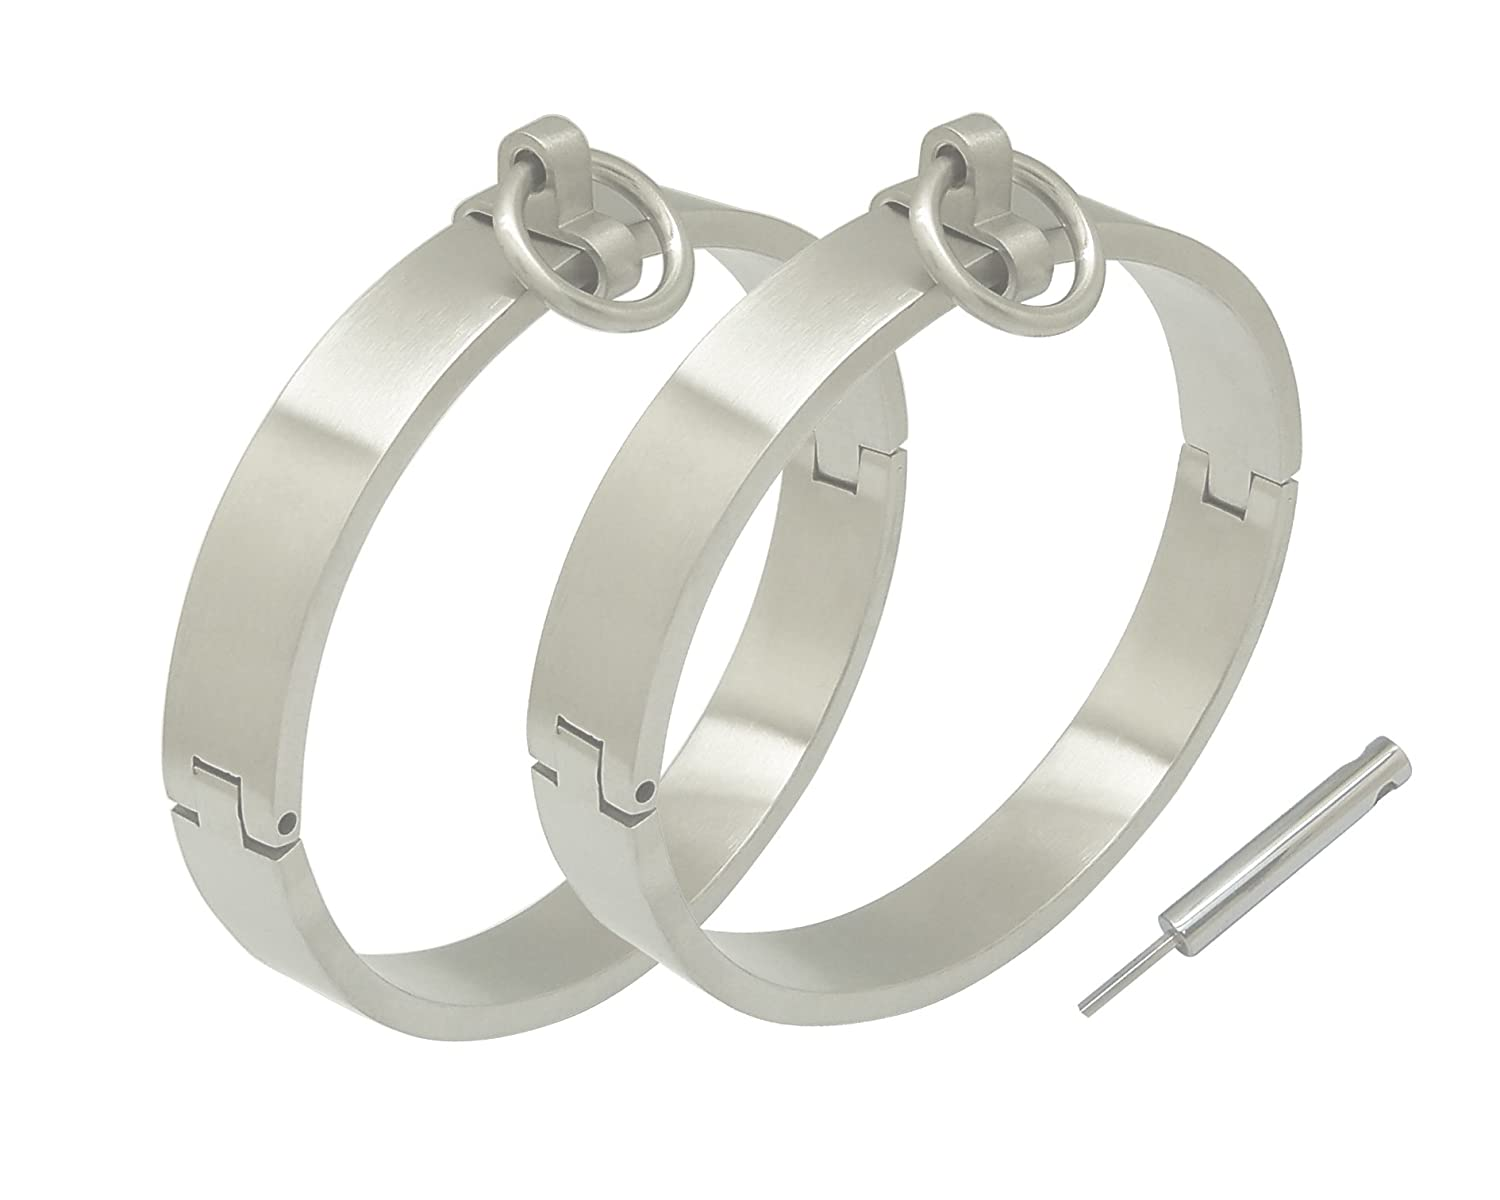 Brushed Stainless Steel Lockable Wrist and Ankle Cuffs with Removable O Ring